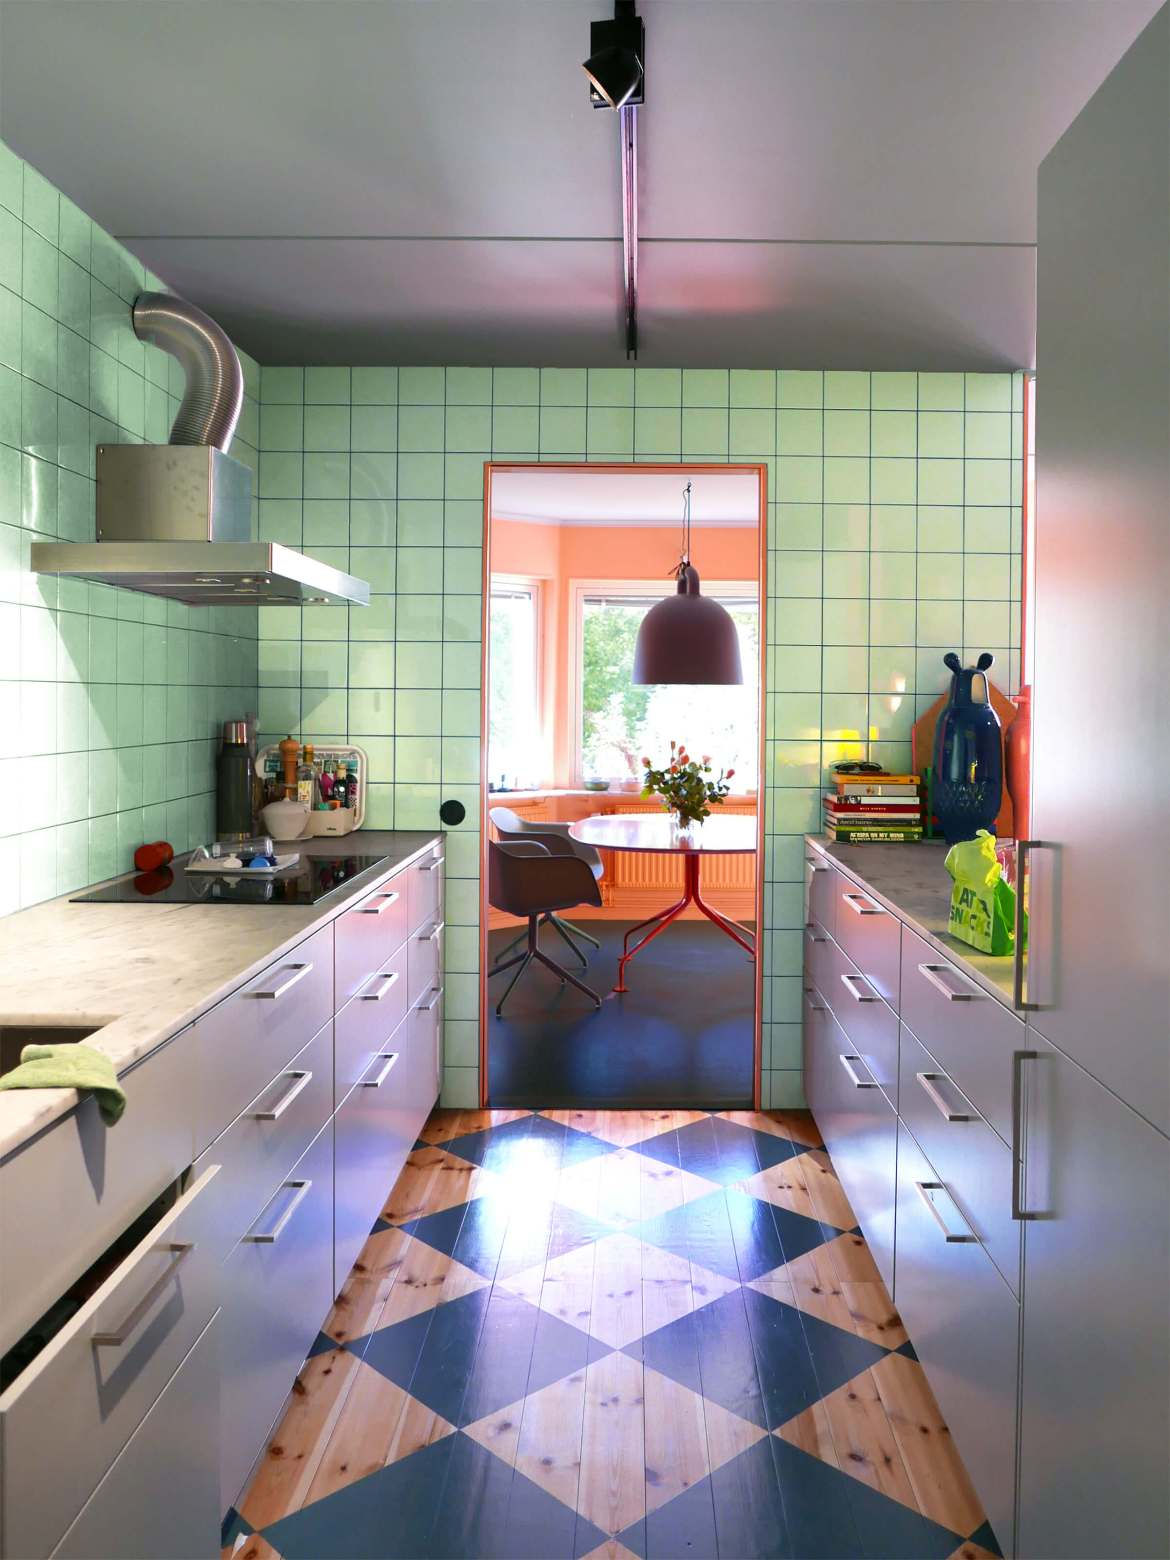 A mint green kitchen and practical cupboards. Image: Tekla Severin